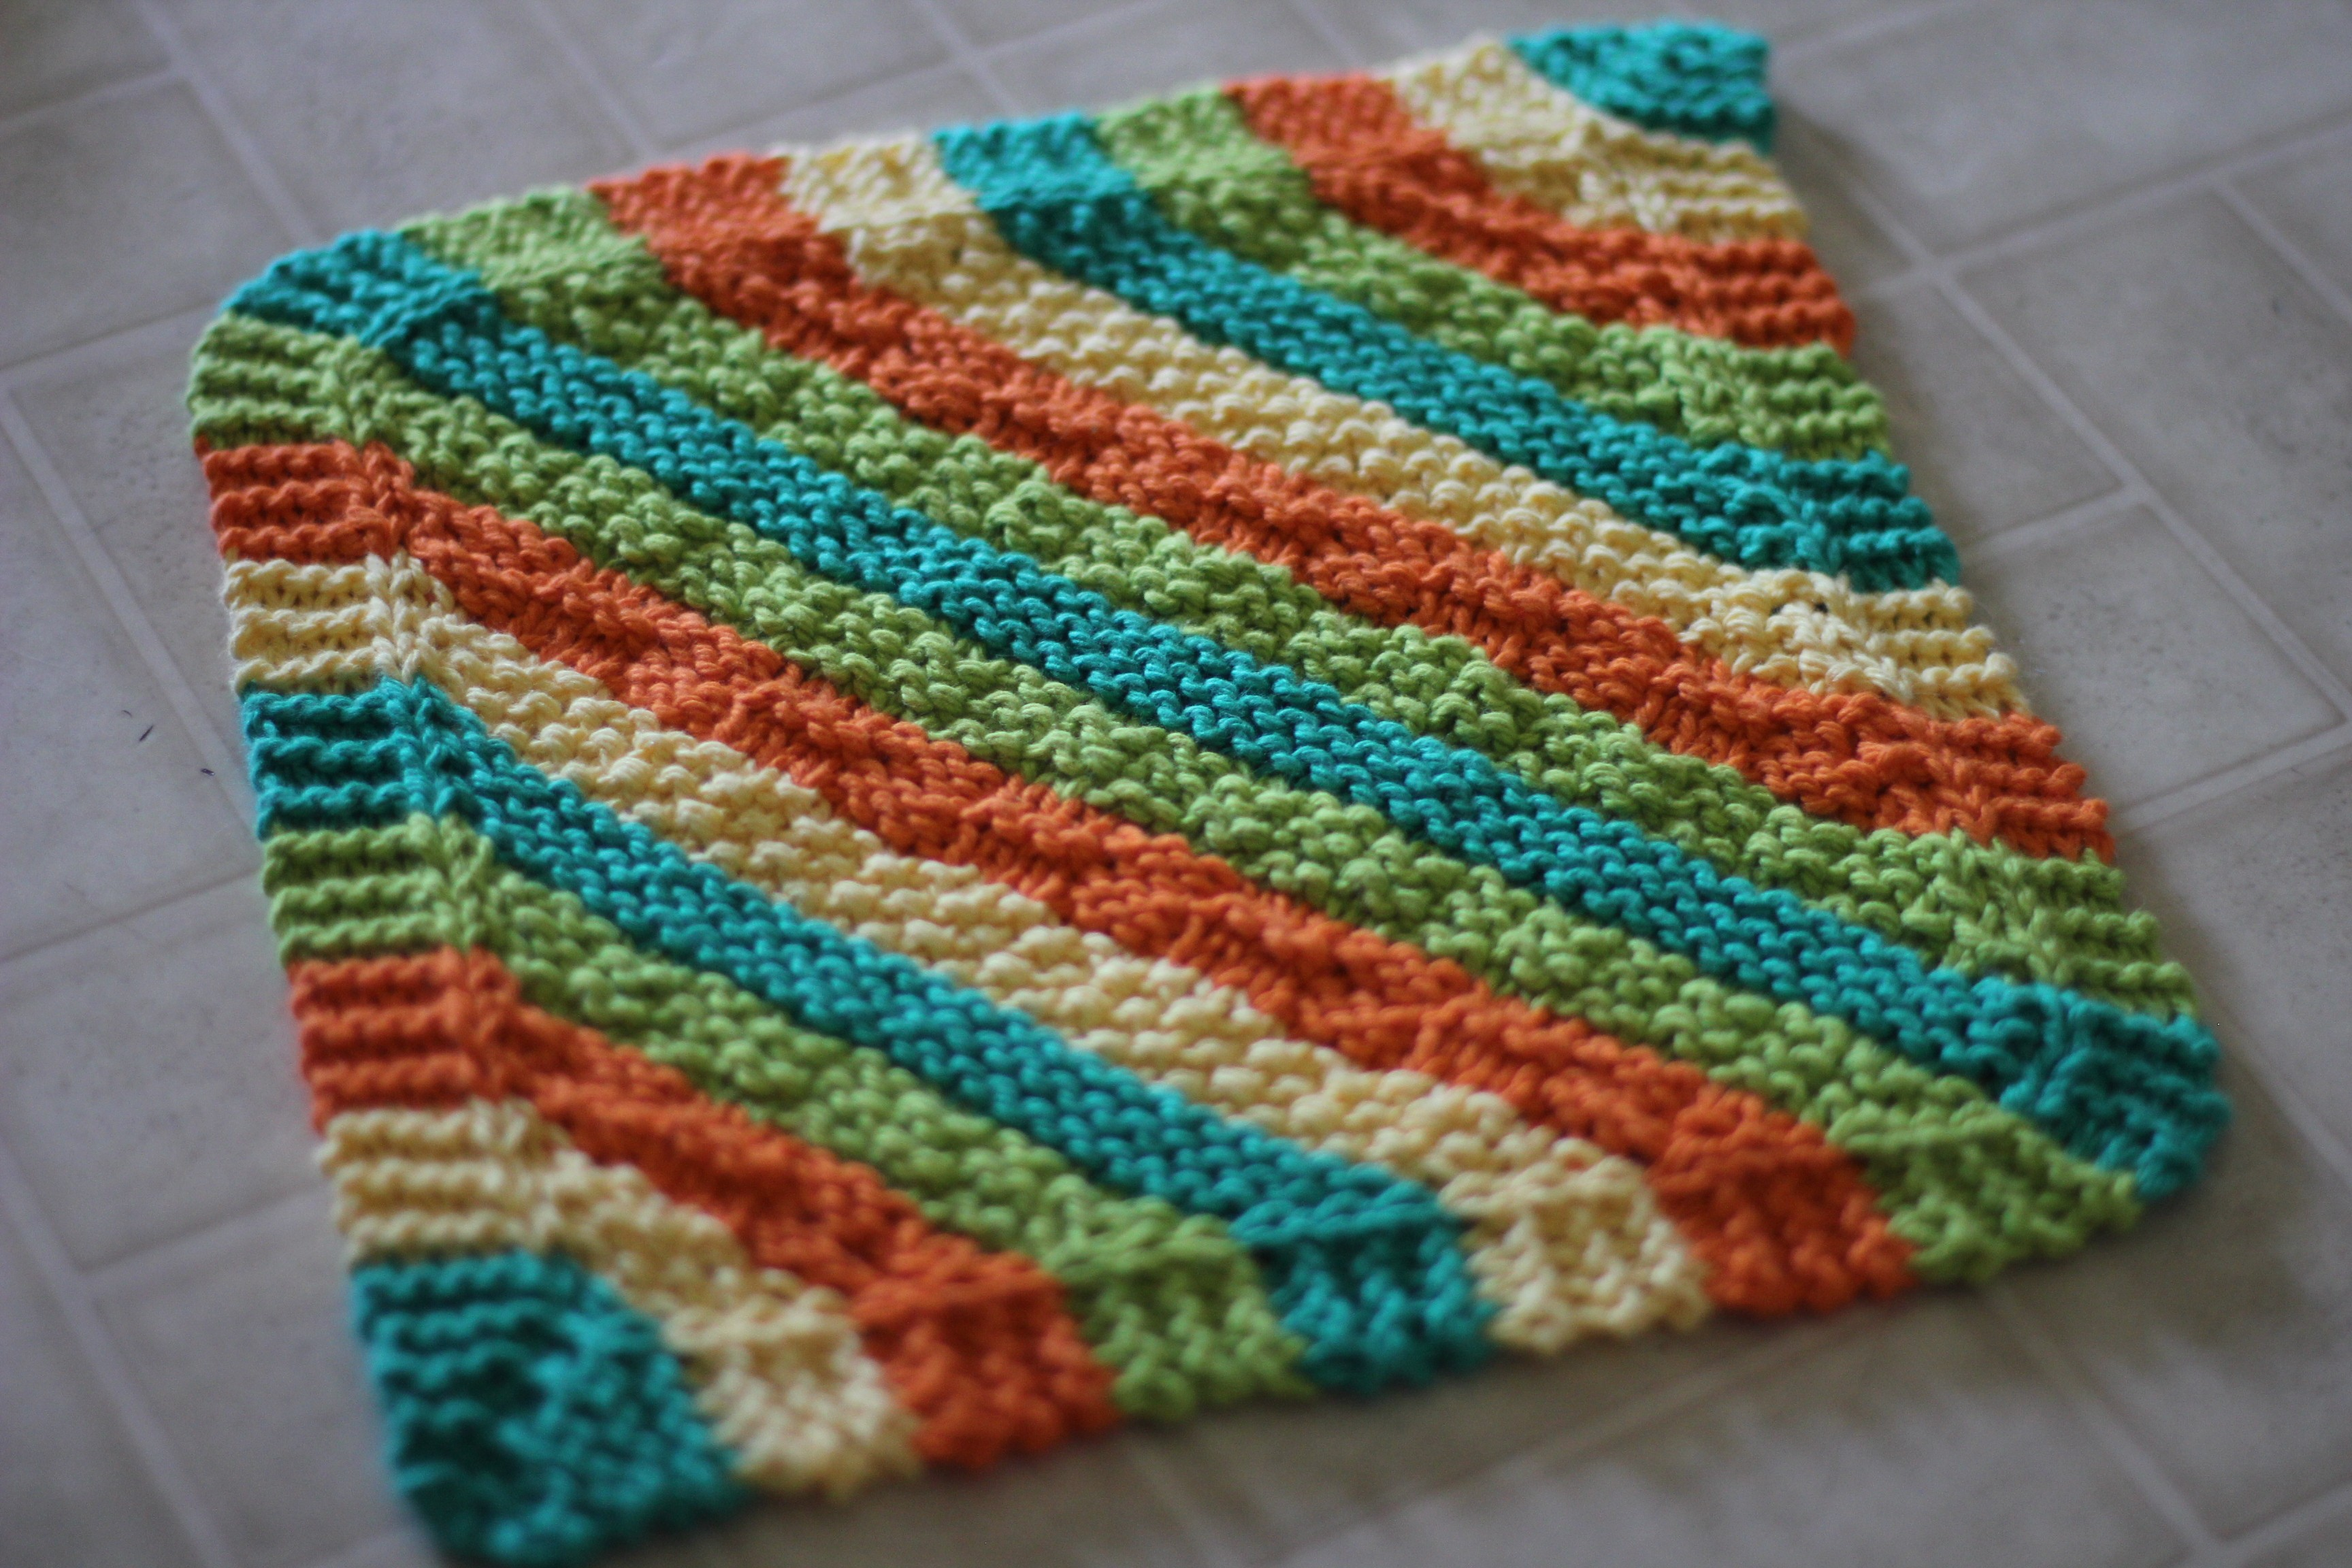 Simple Dishcloth Knitting Pattern : Chauffage climatisation: Dishcloth knitting pattern easy